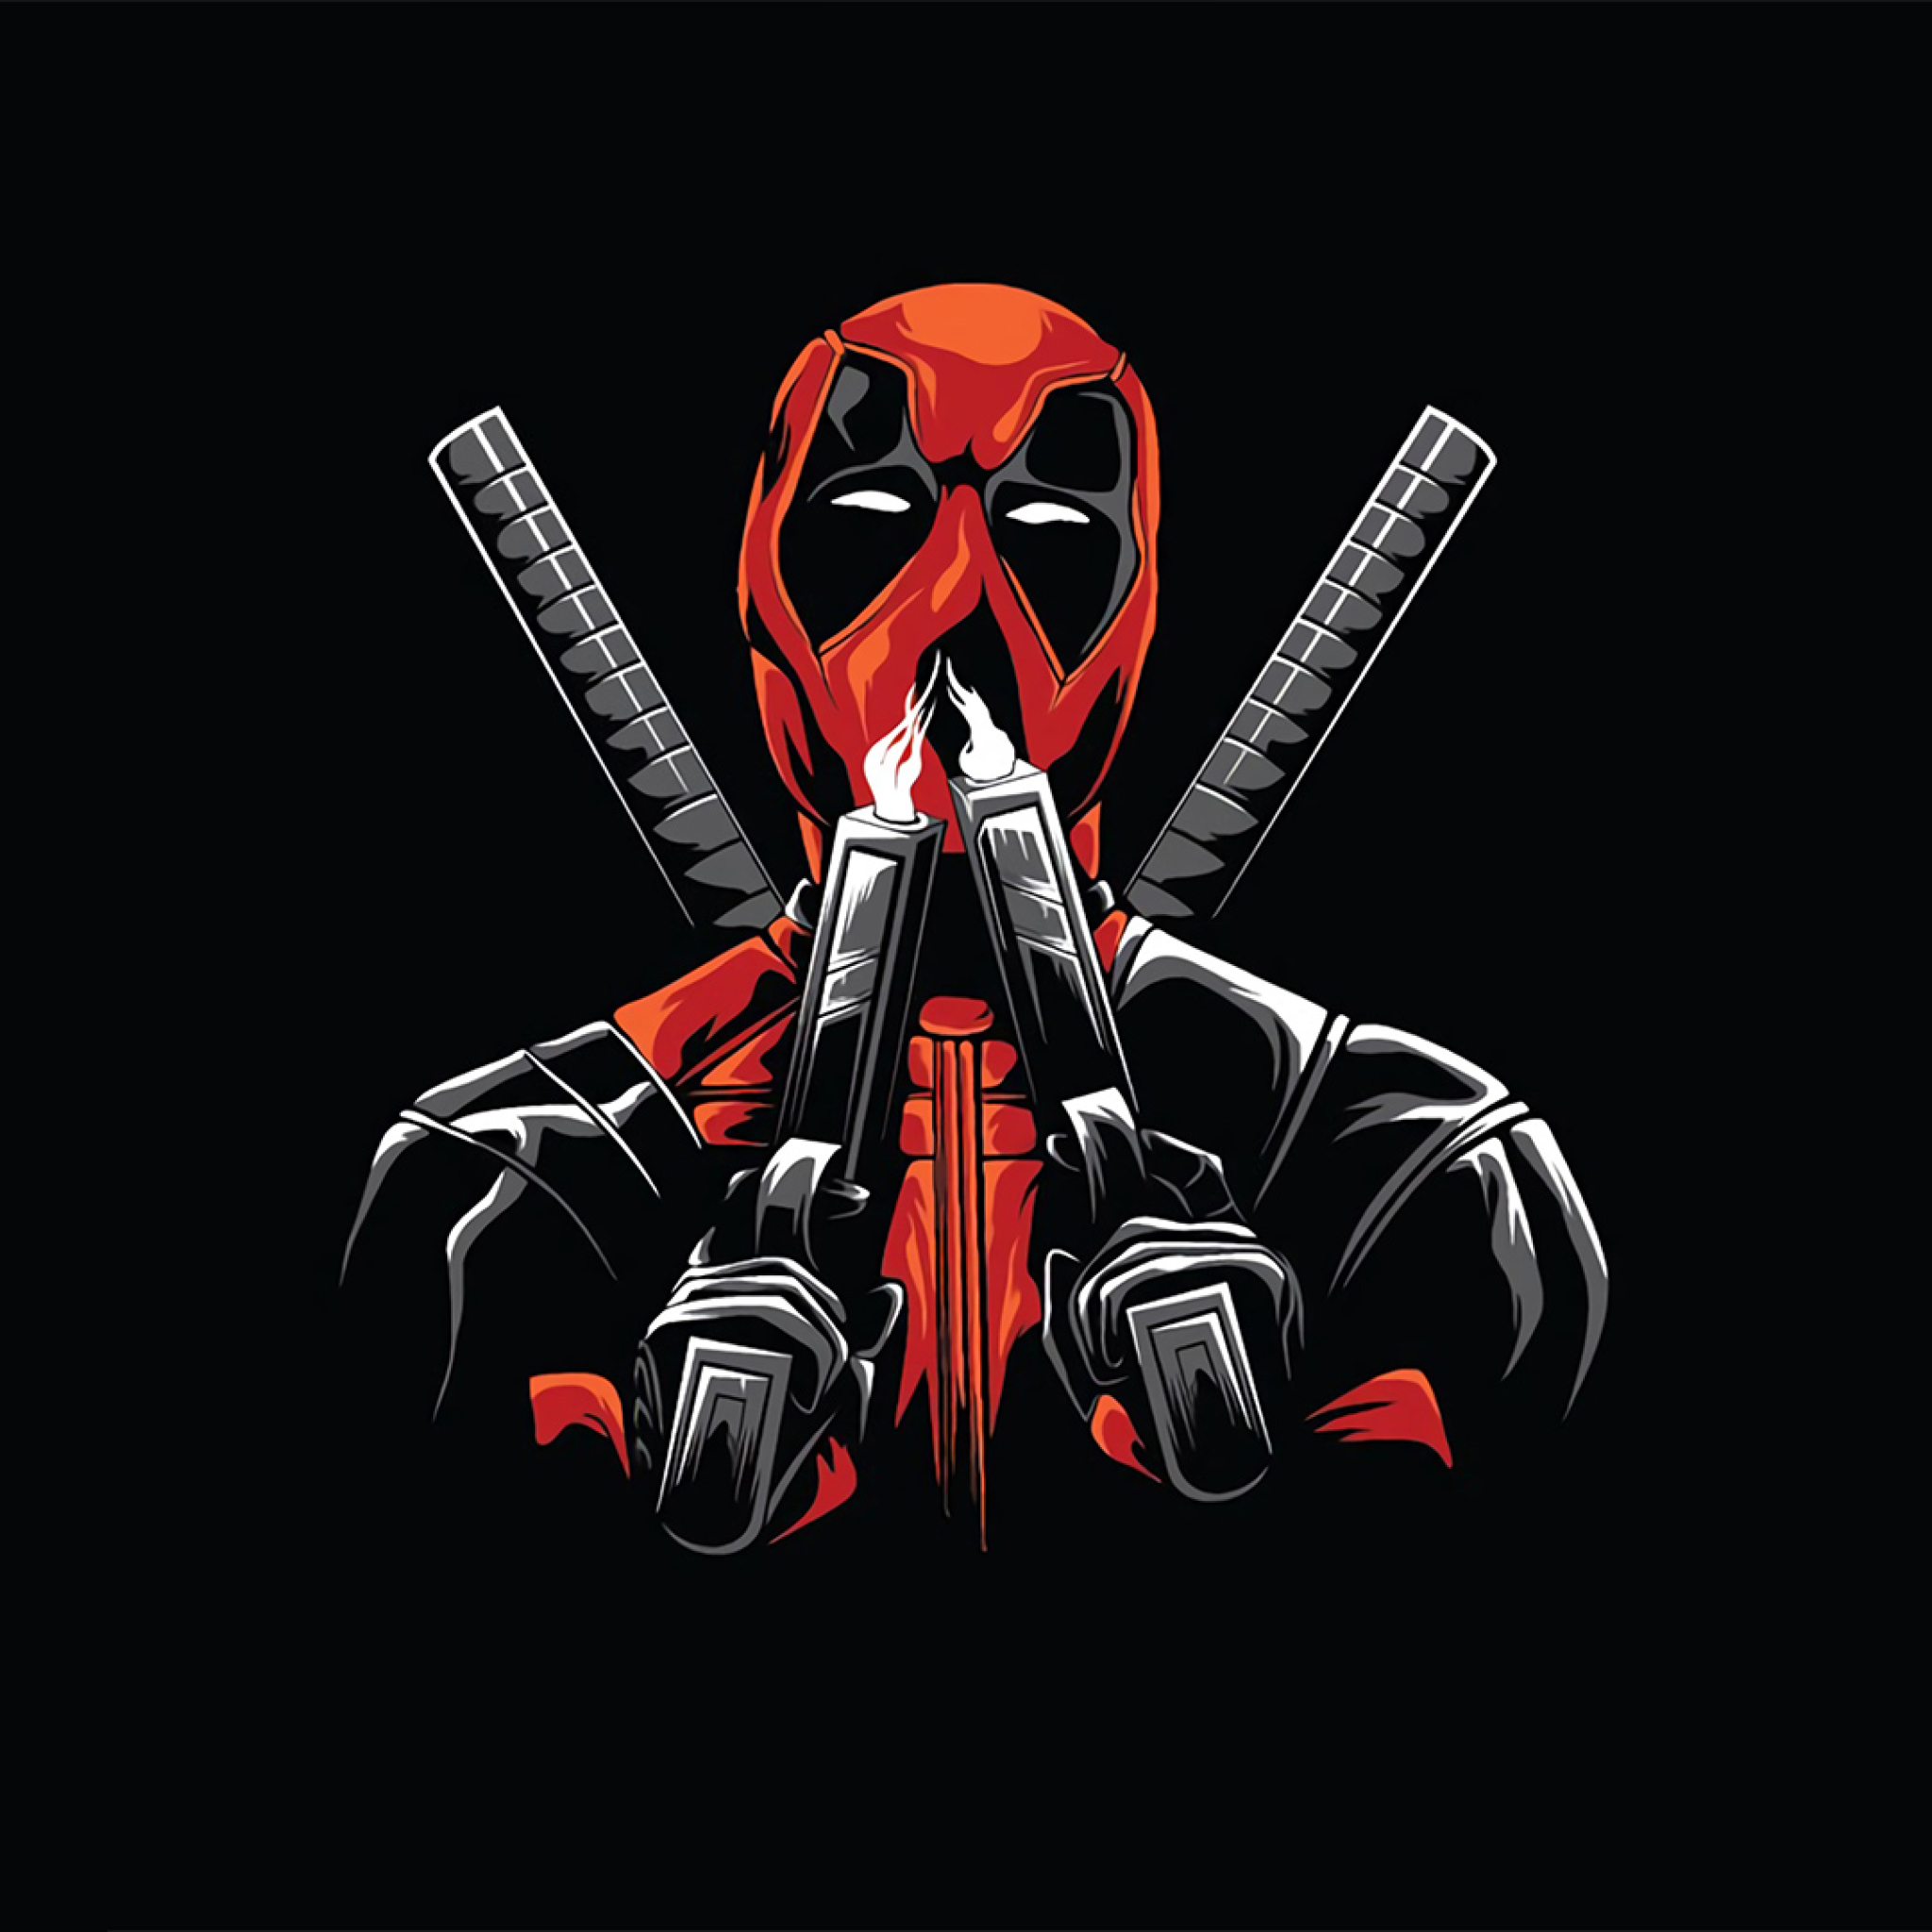 2048x2048 Deadpool Minimal Ipad Air Wallpaper, HD ...